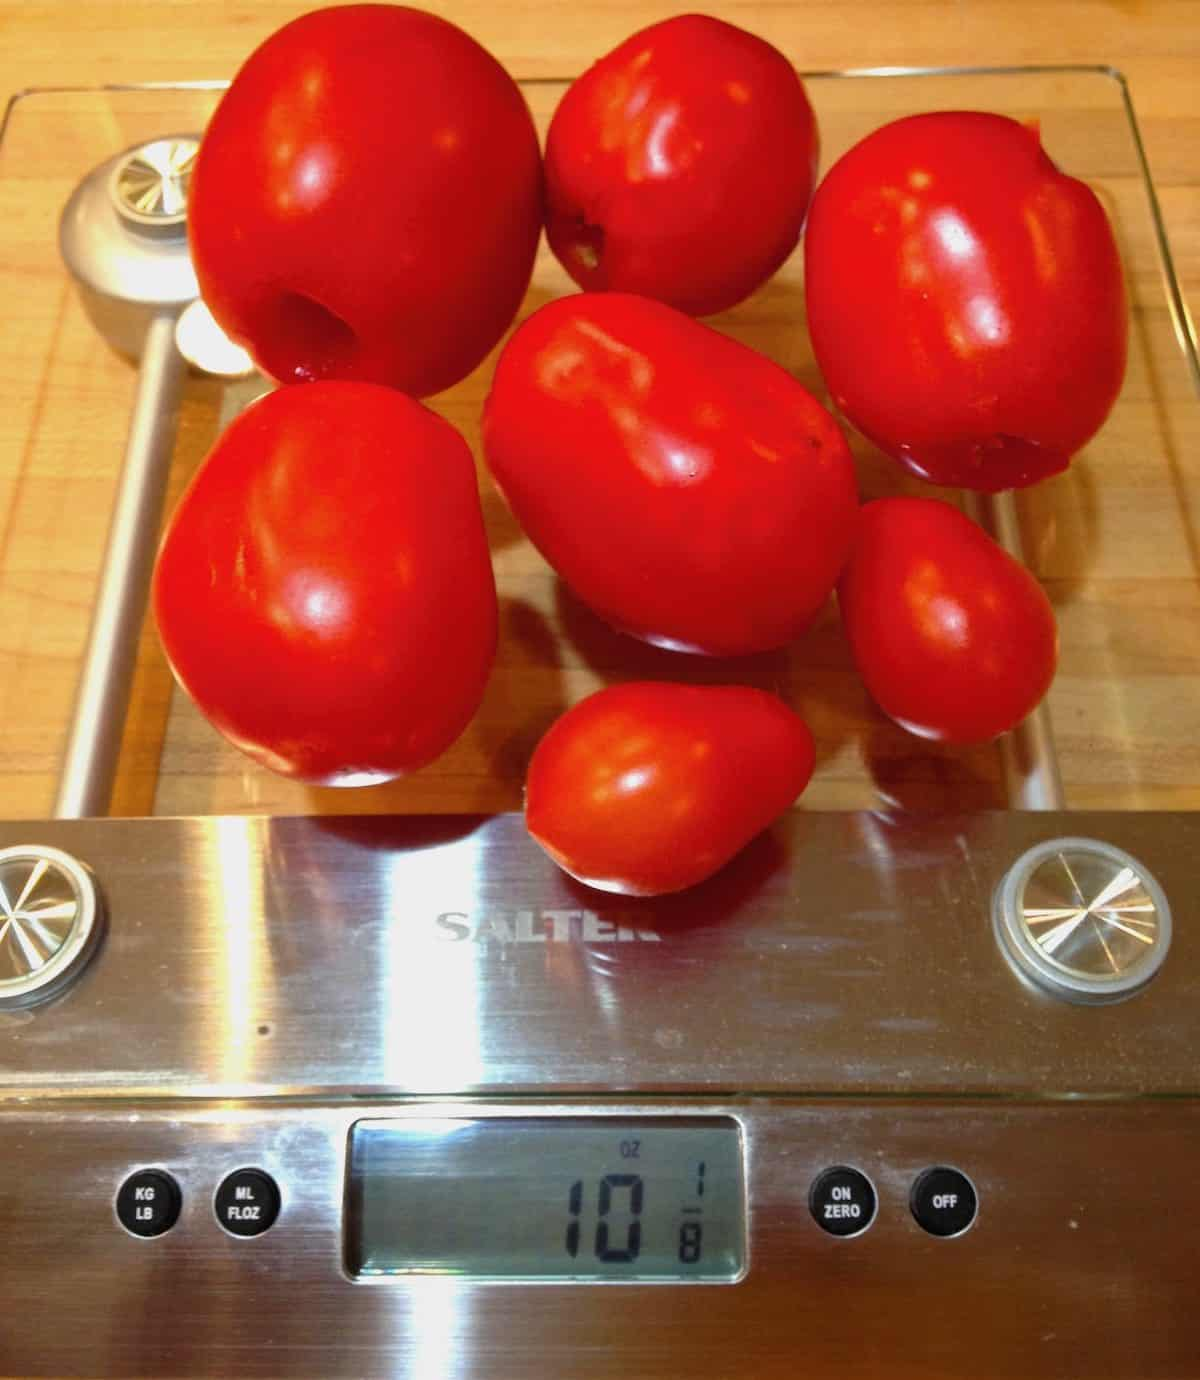 what 10 ounces of tomatoes look like on scale